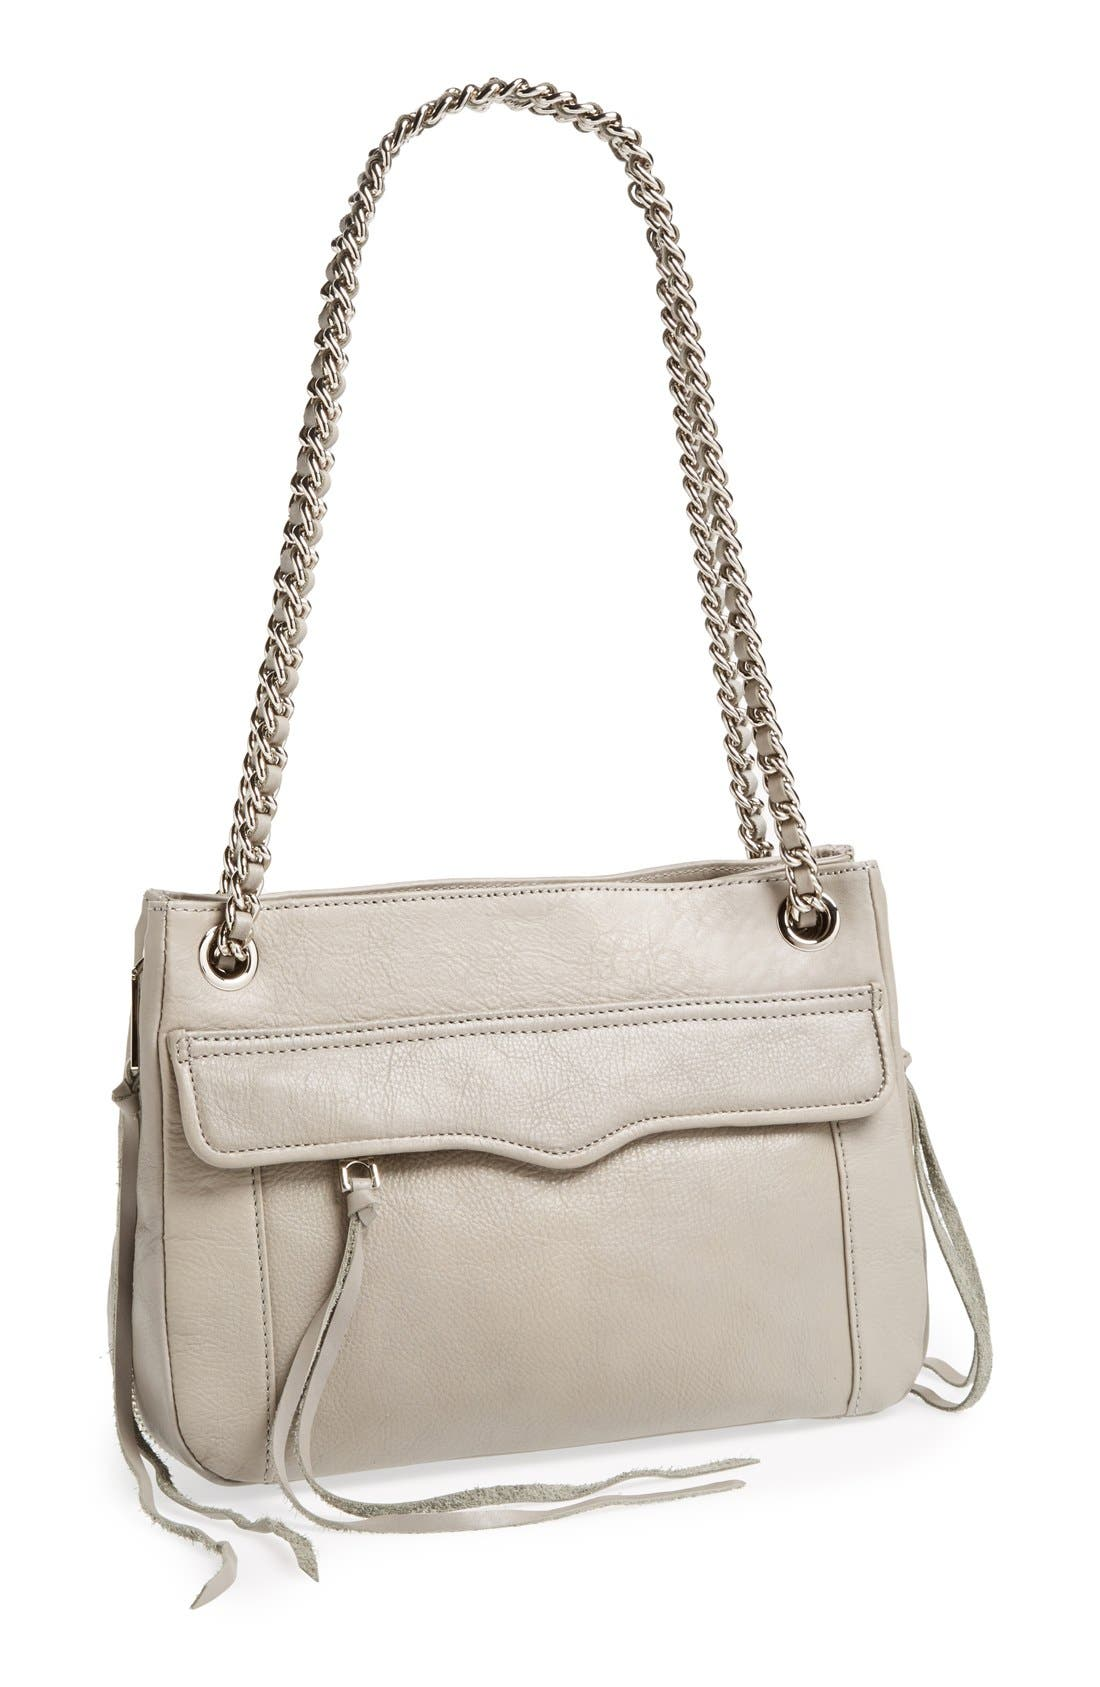 Main Image - Rebecca Minkoff 'Swing' Double Chain Leather Shoulder Bag